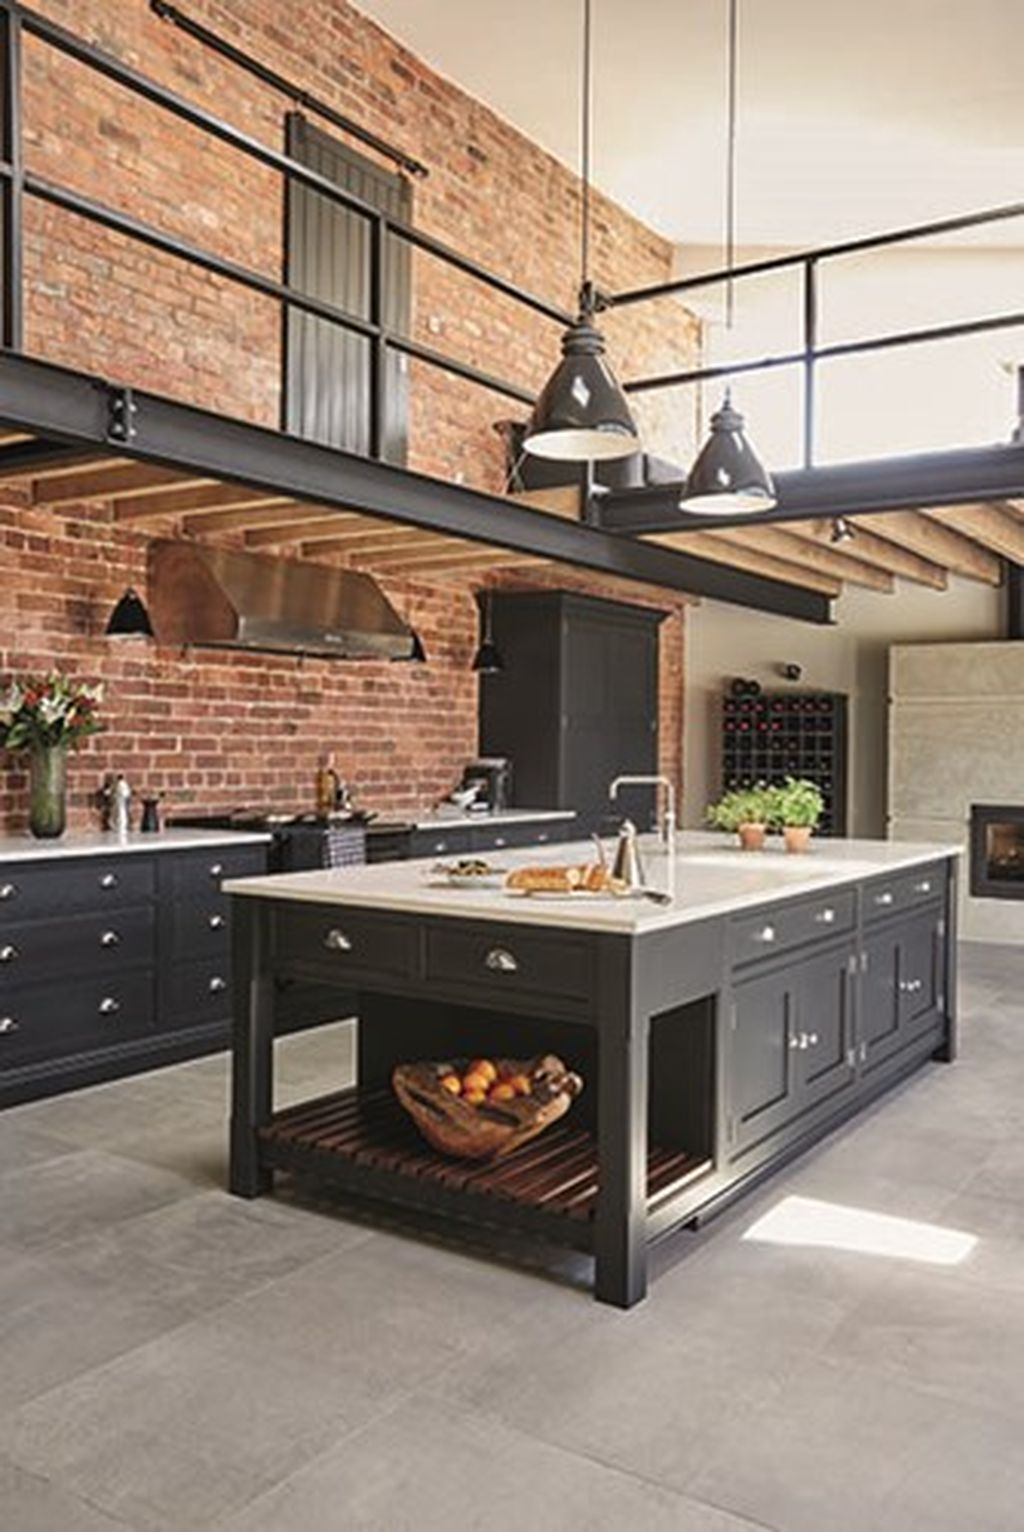 60 Stylish Industrial Kitchen Design Ideas Industrial Kitchen